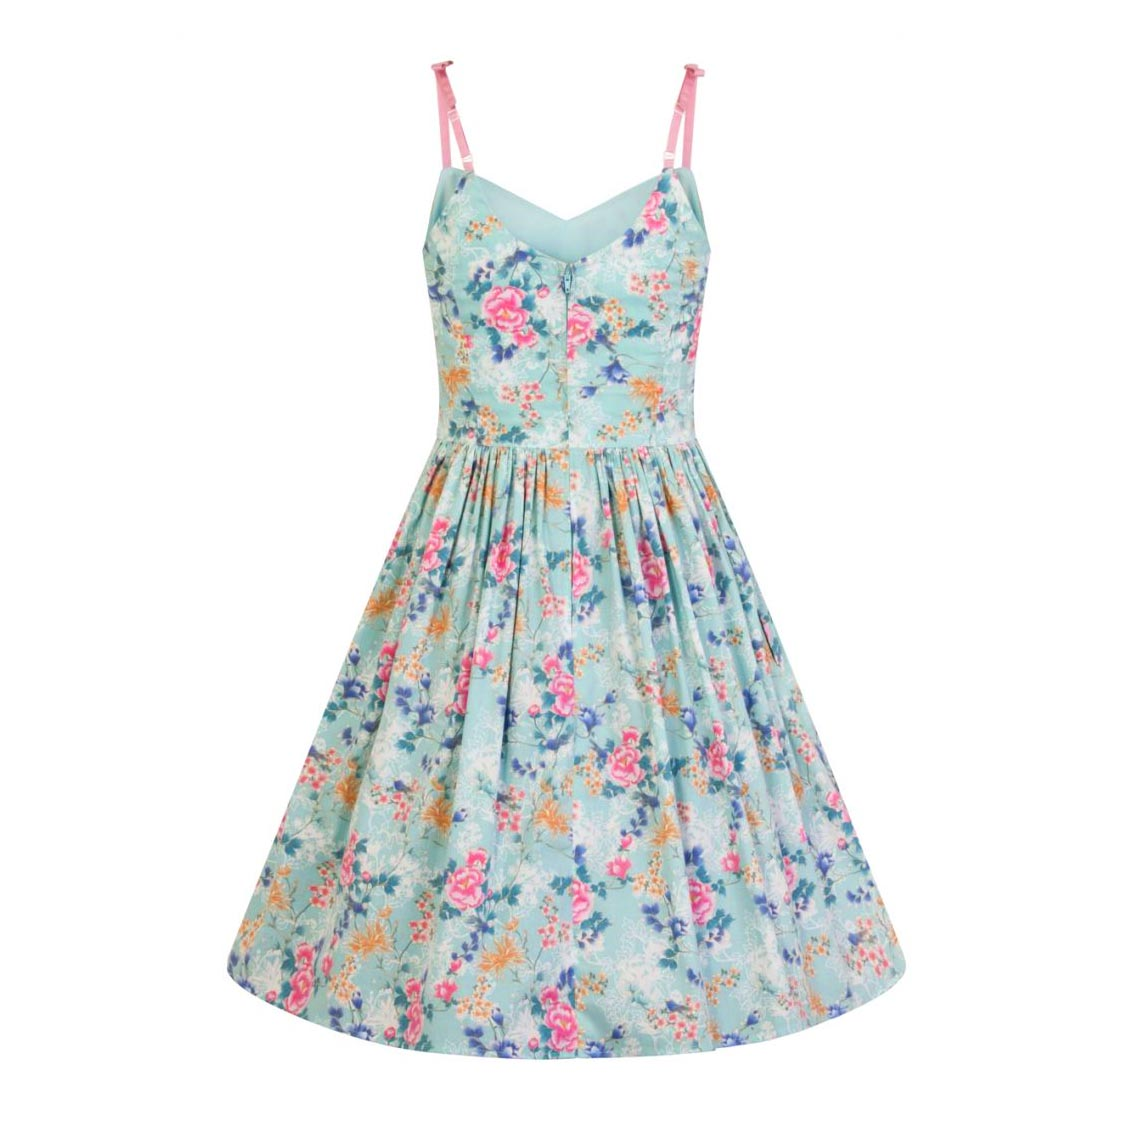 Hell-Bunny-50s-Mid-Length-Dress-Vintage-Blue-Pink-SAKURA-Flowers-Roses-All-Sizes thumbnail 35